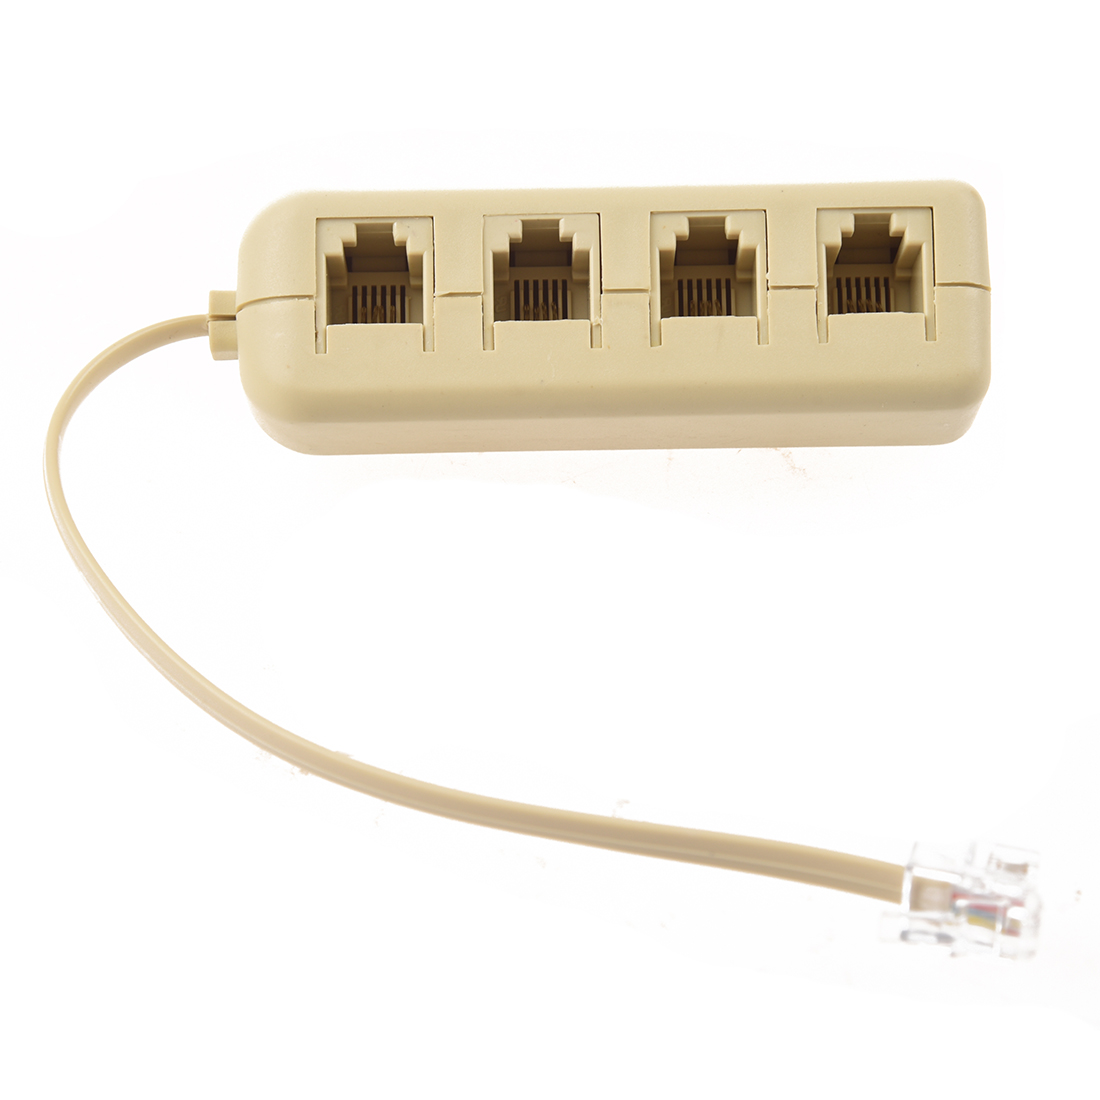 WSFS Hot Sale RJ11 6P4C to 6P4C 4 Way Telephone Line Modular Splitter Adapter White